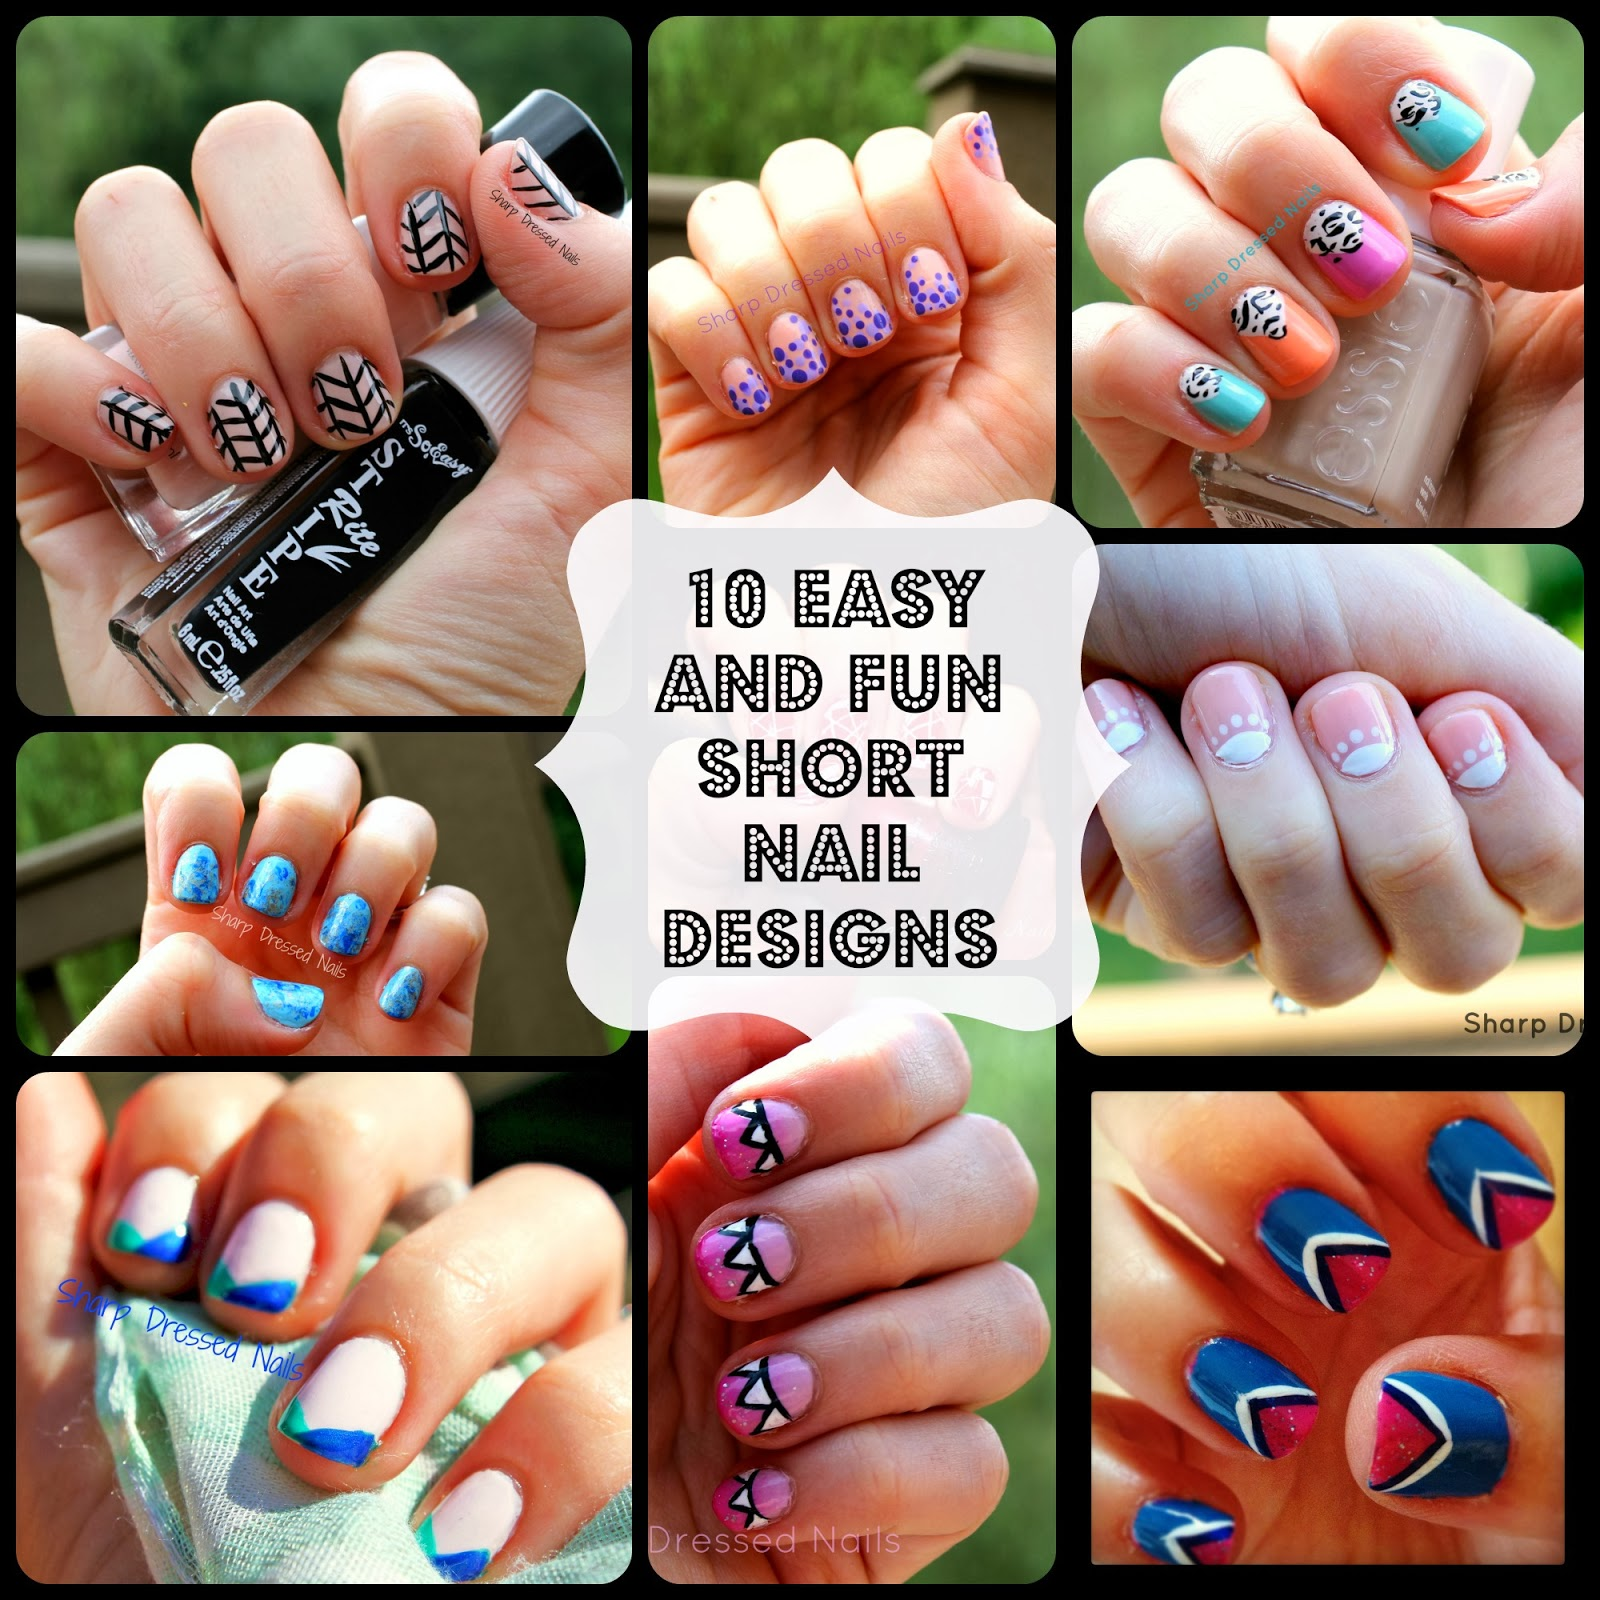 Sharp Dressed Nails 10 Easy And Fun Nail Designs For Short Nails